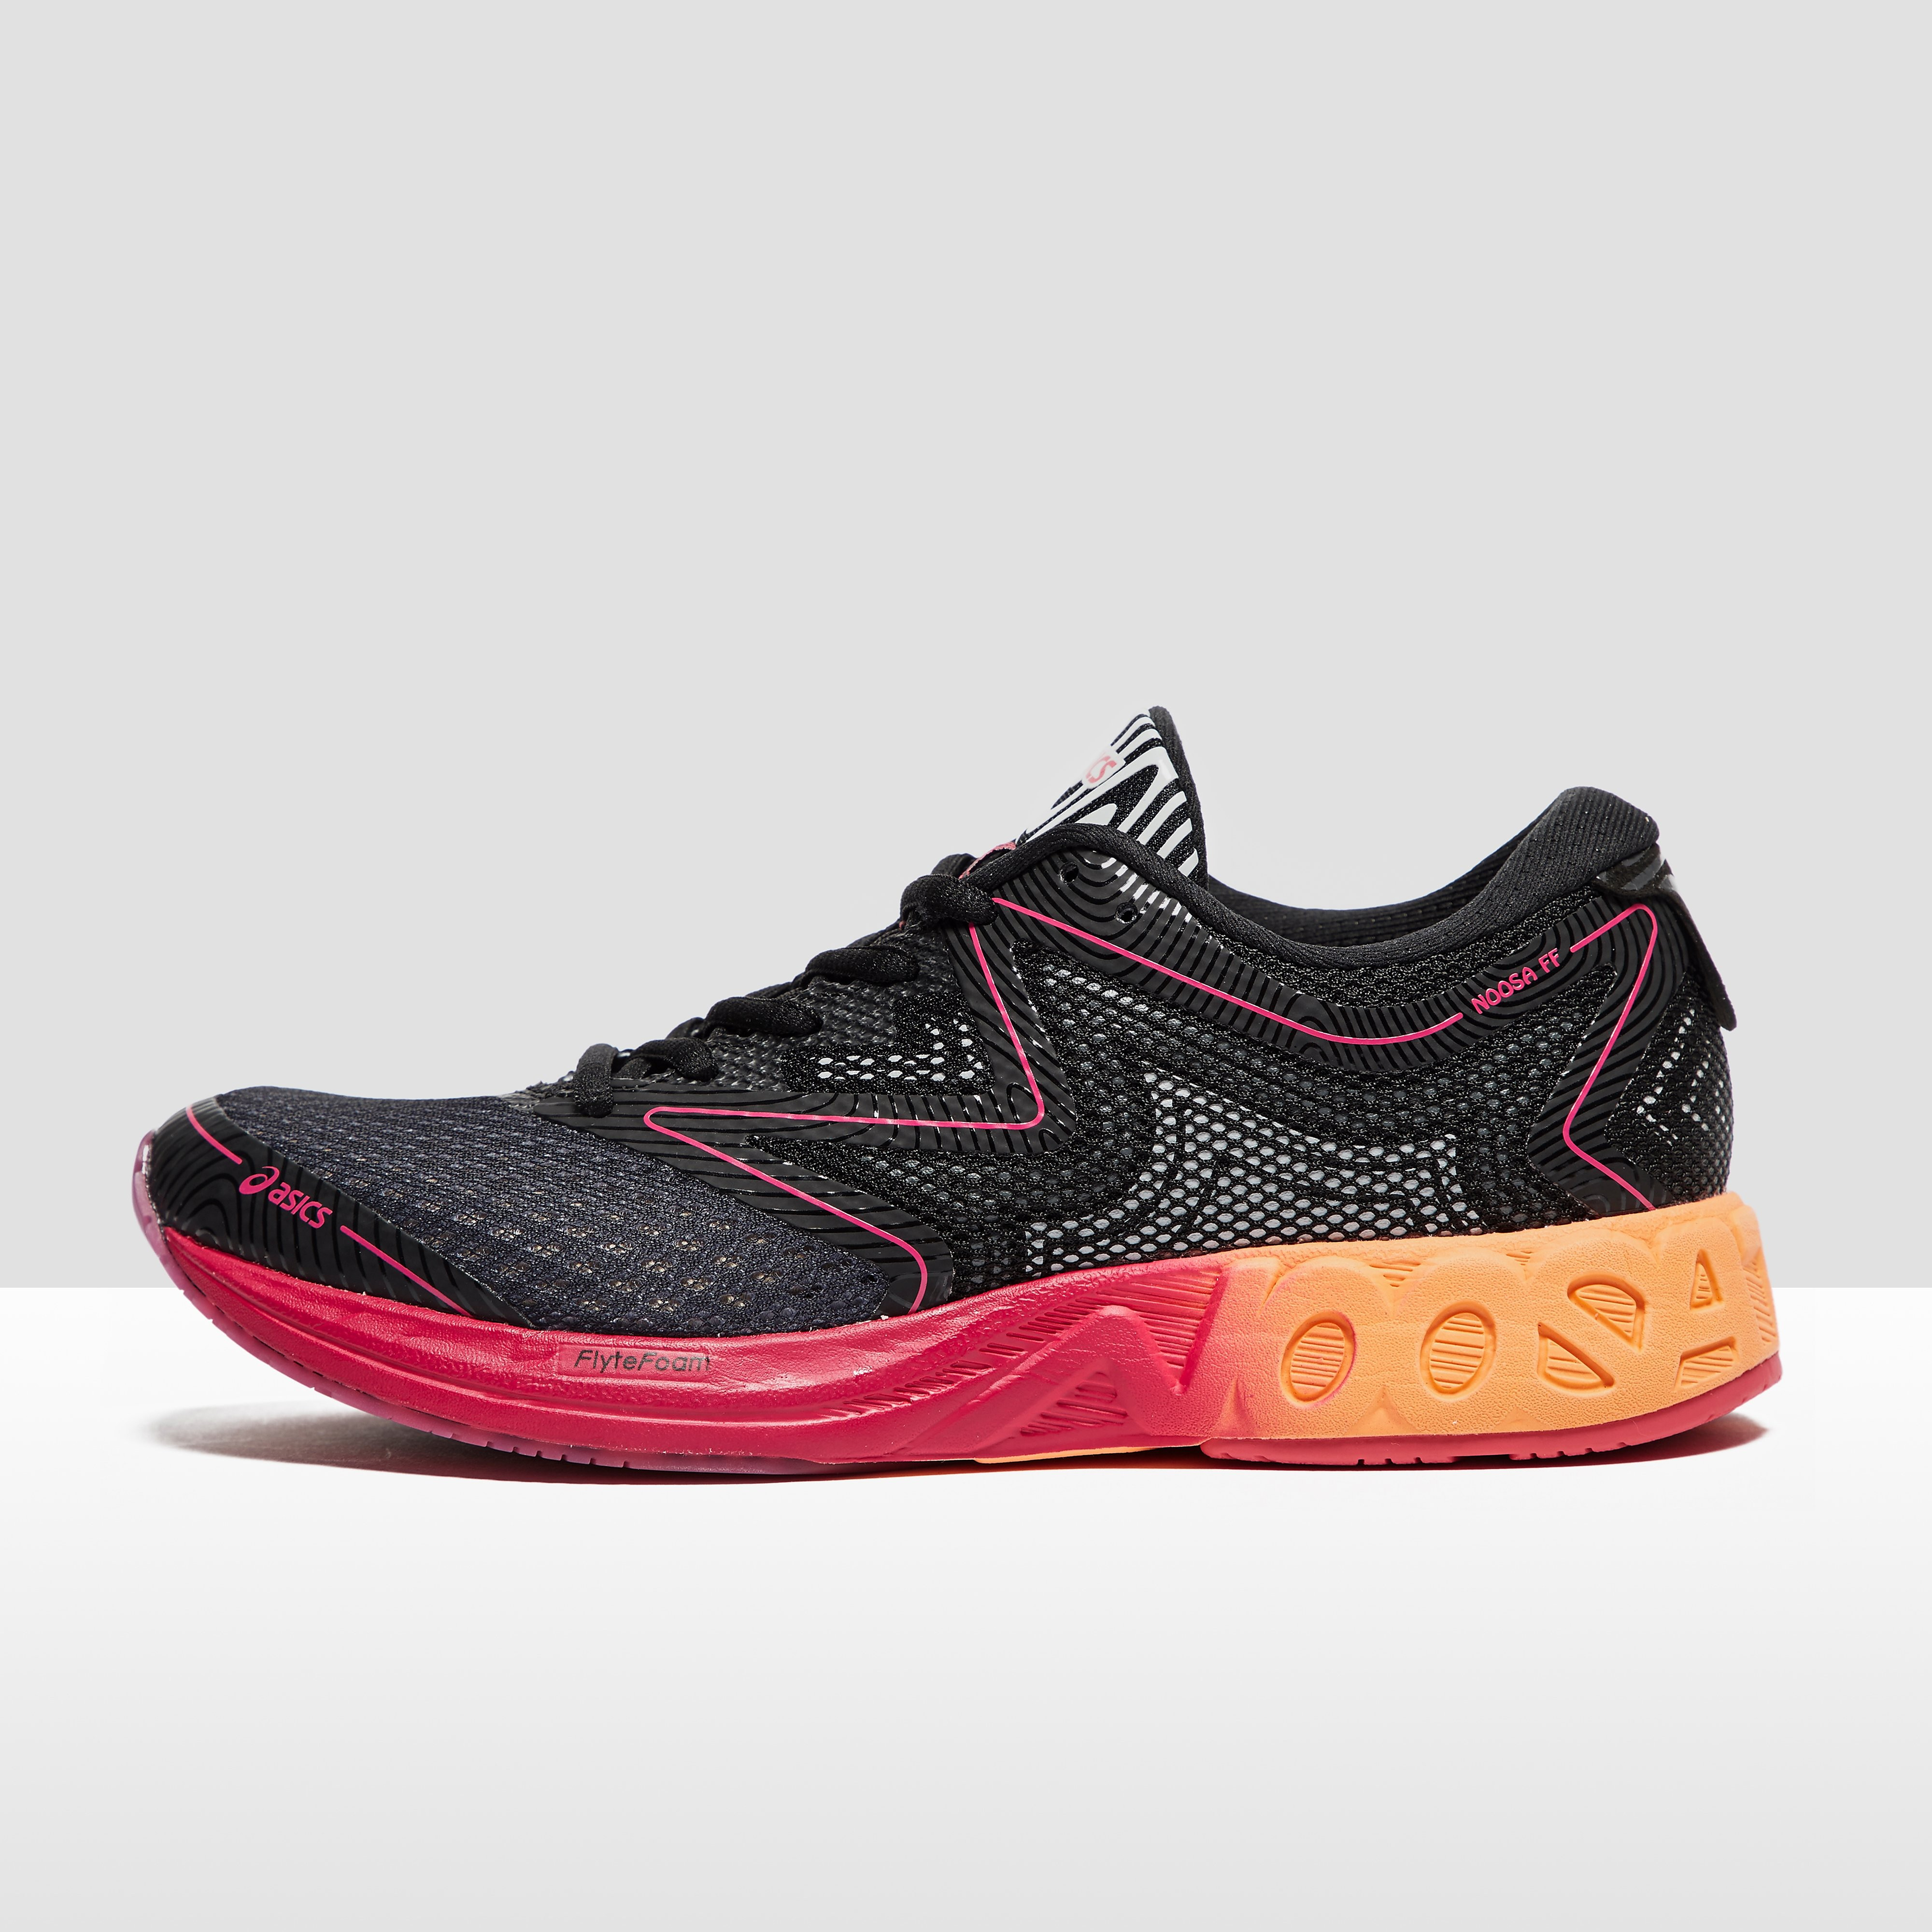 ASICS GEL- Noosa FF Women's Running Shoes